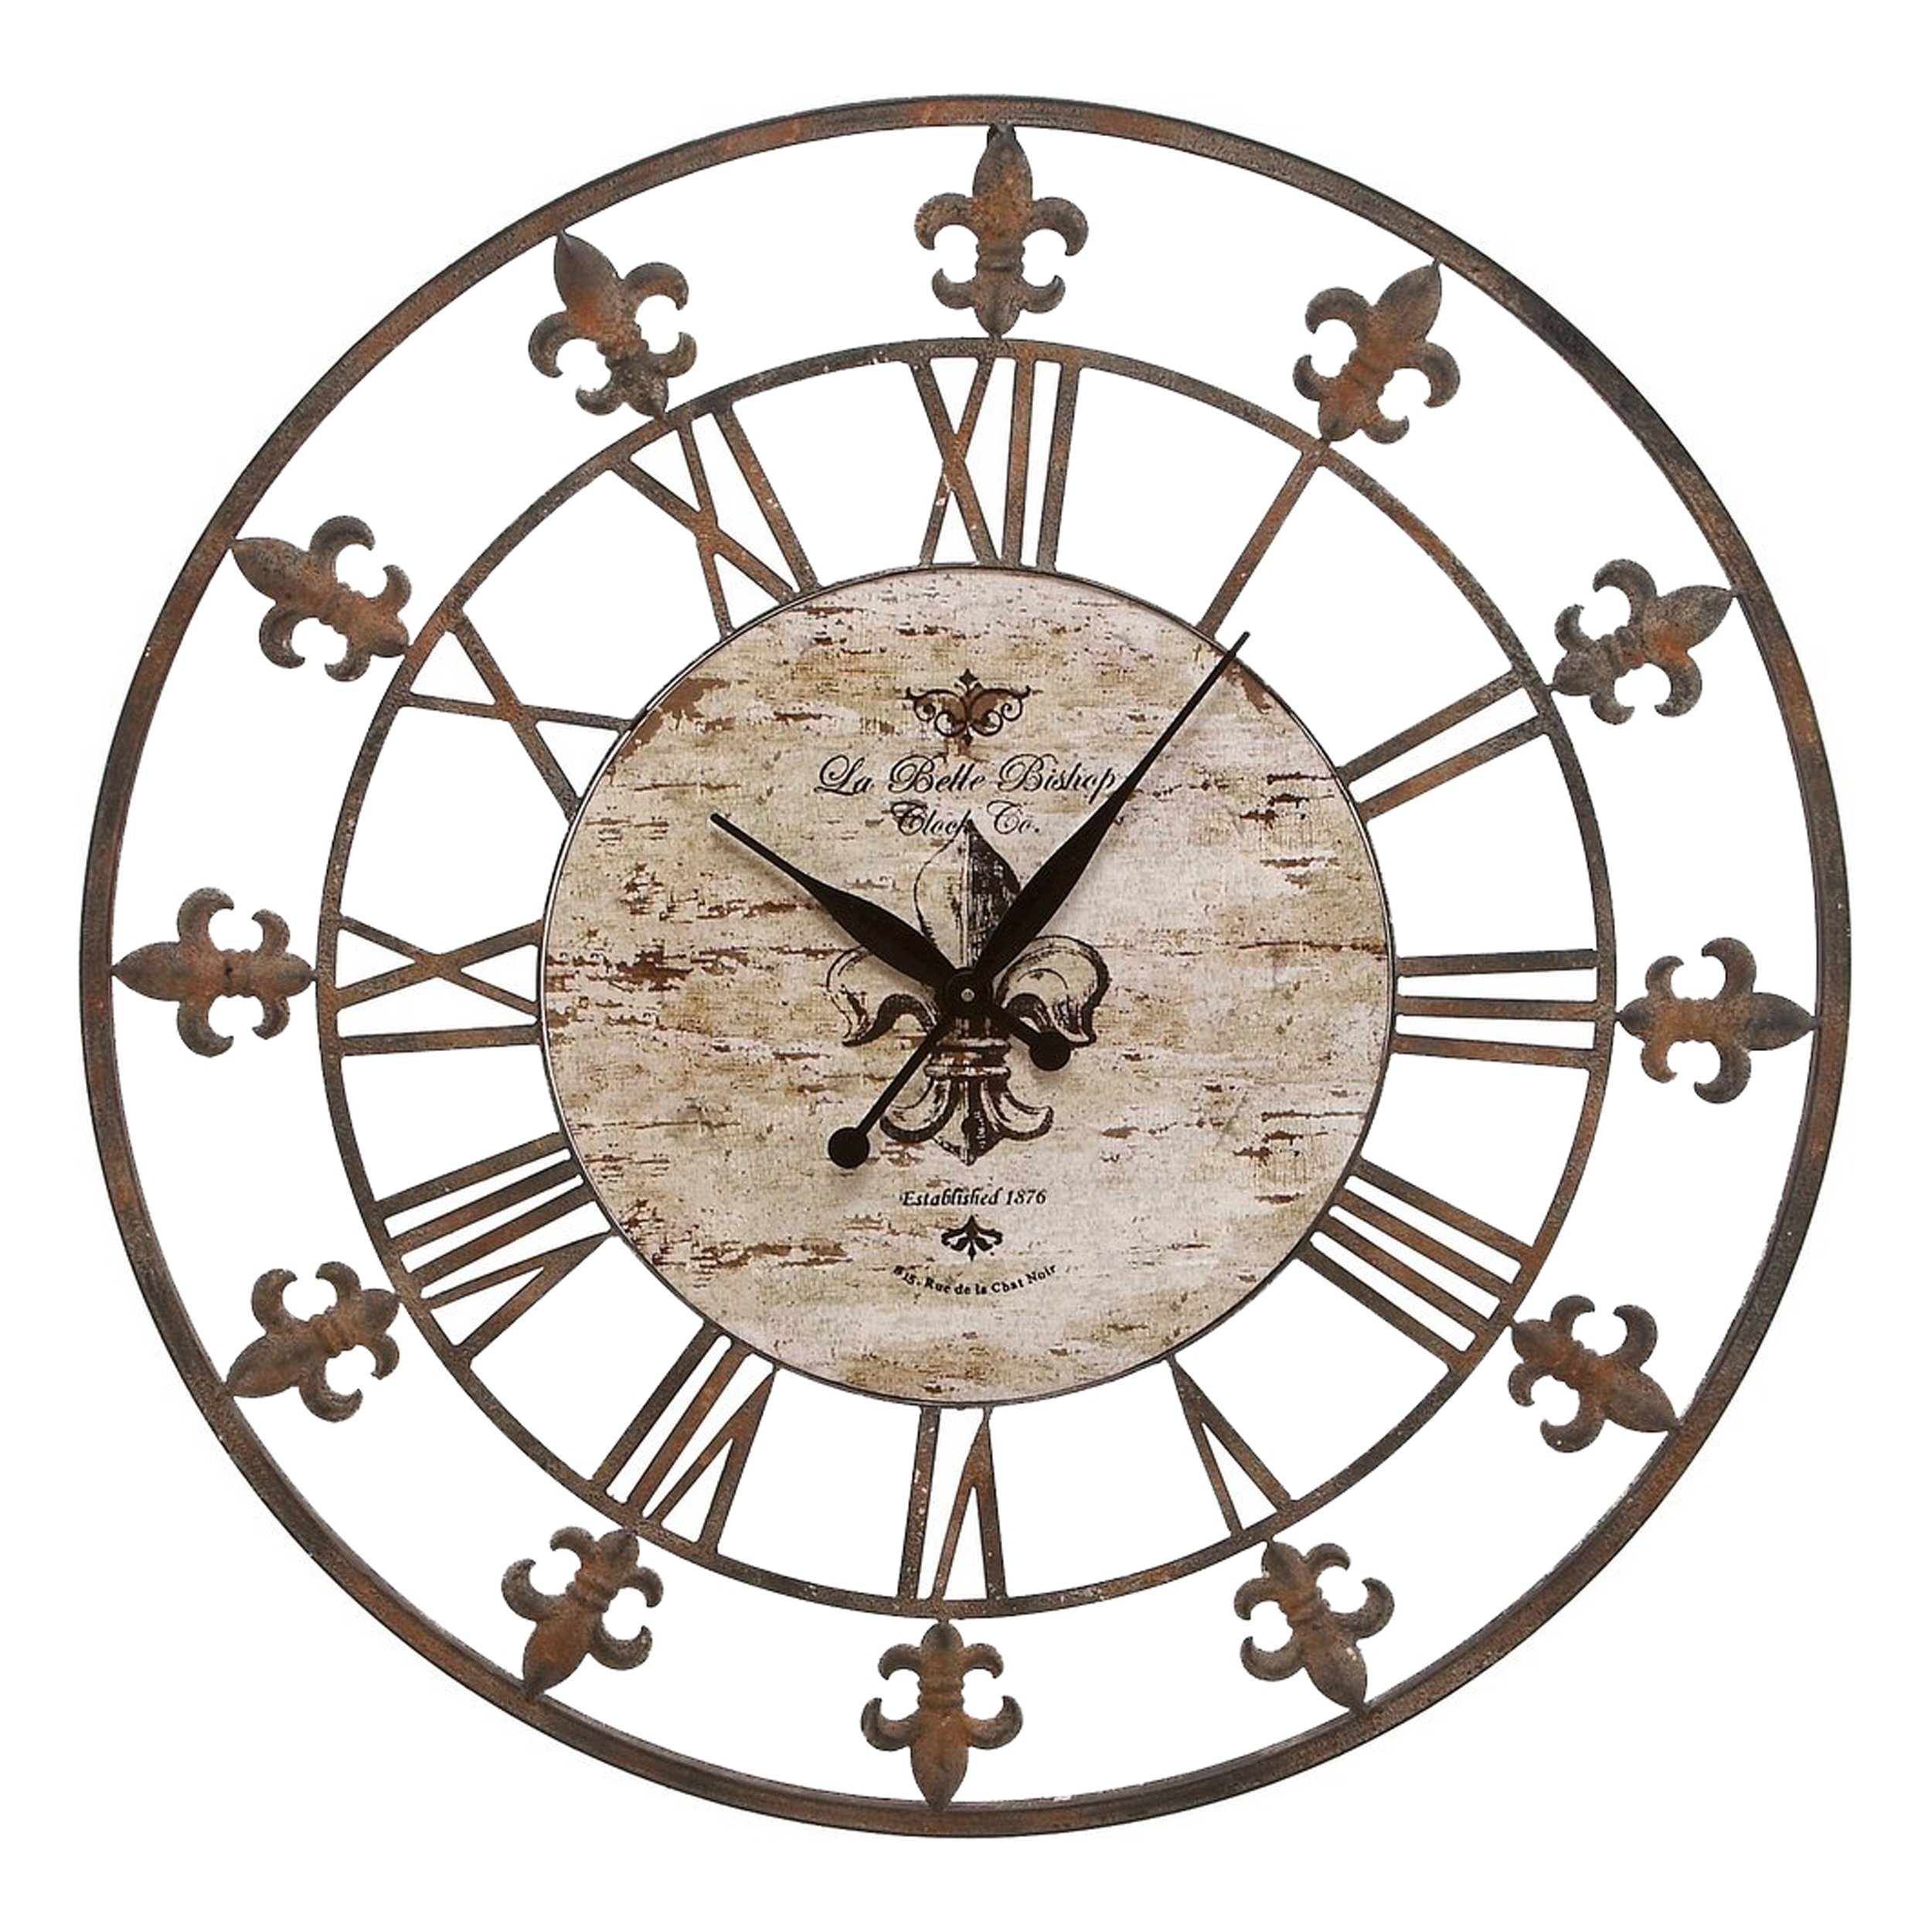 60 Inch Wall Clock You Ll Love In 2021 Visualhunt